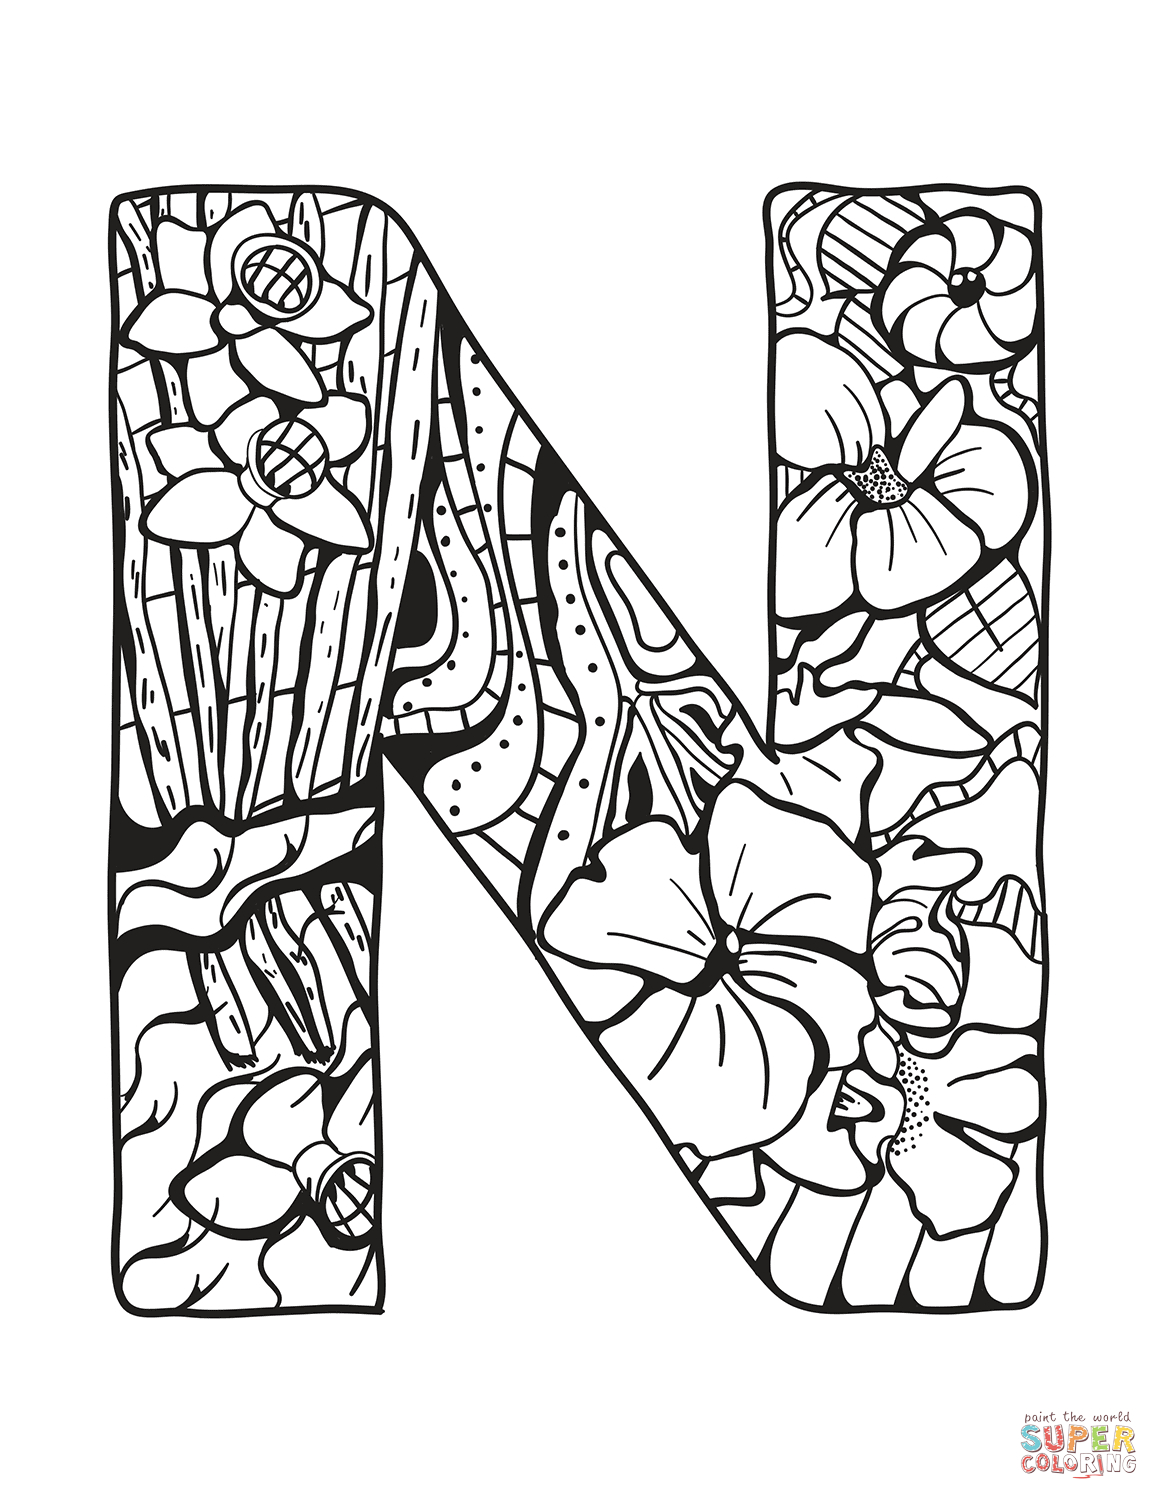 photograph regarding Letter N Printable called Letter N Coloring Webpage Letter N Zentangle Coloring Webpage Cost-free